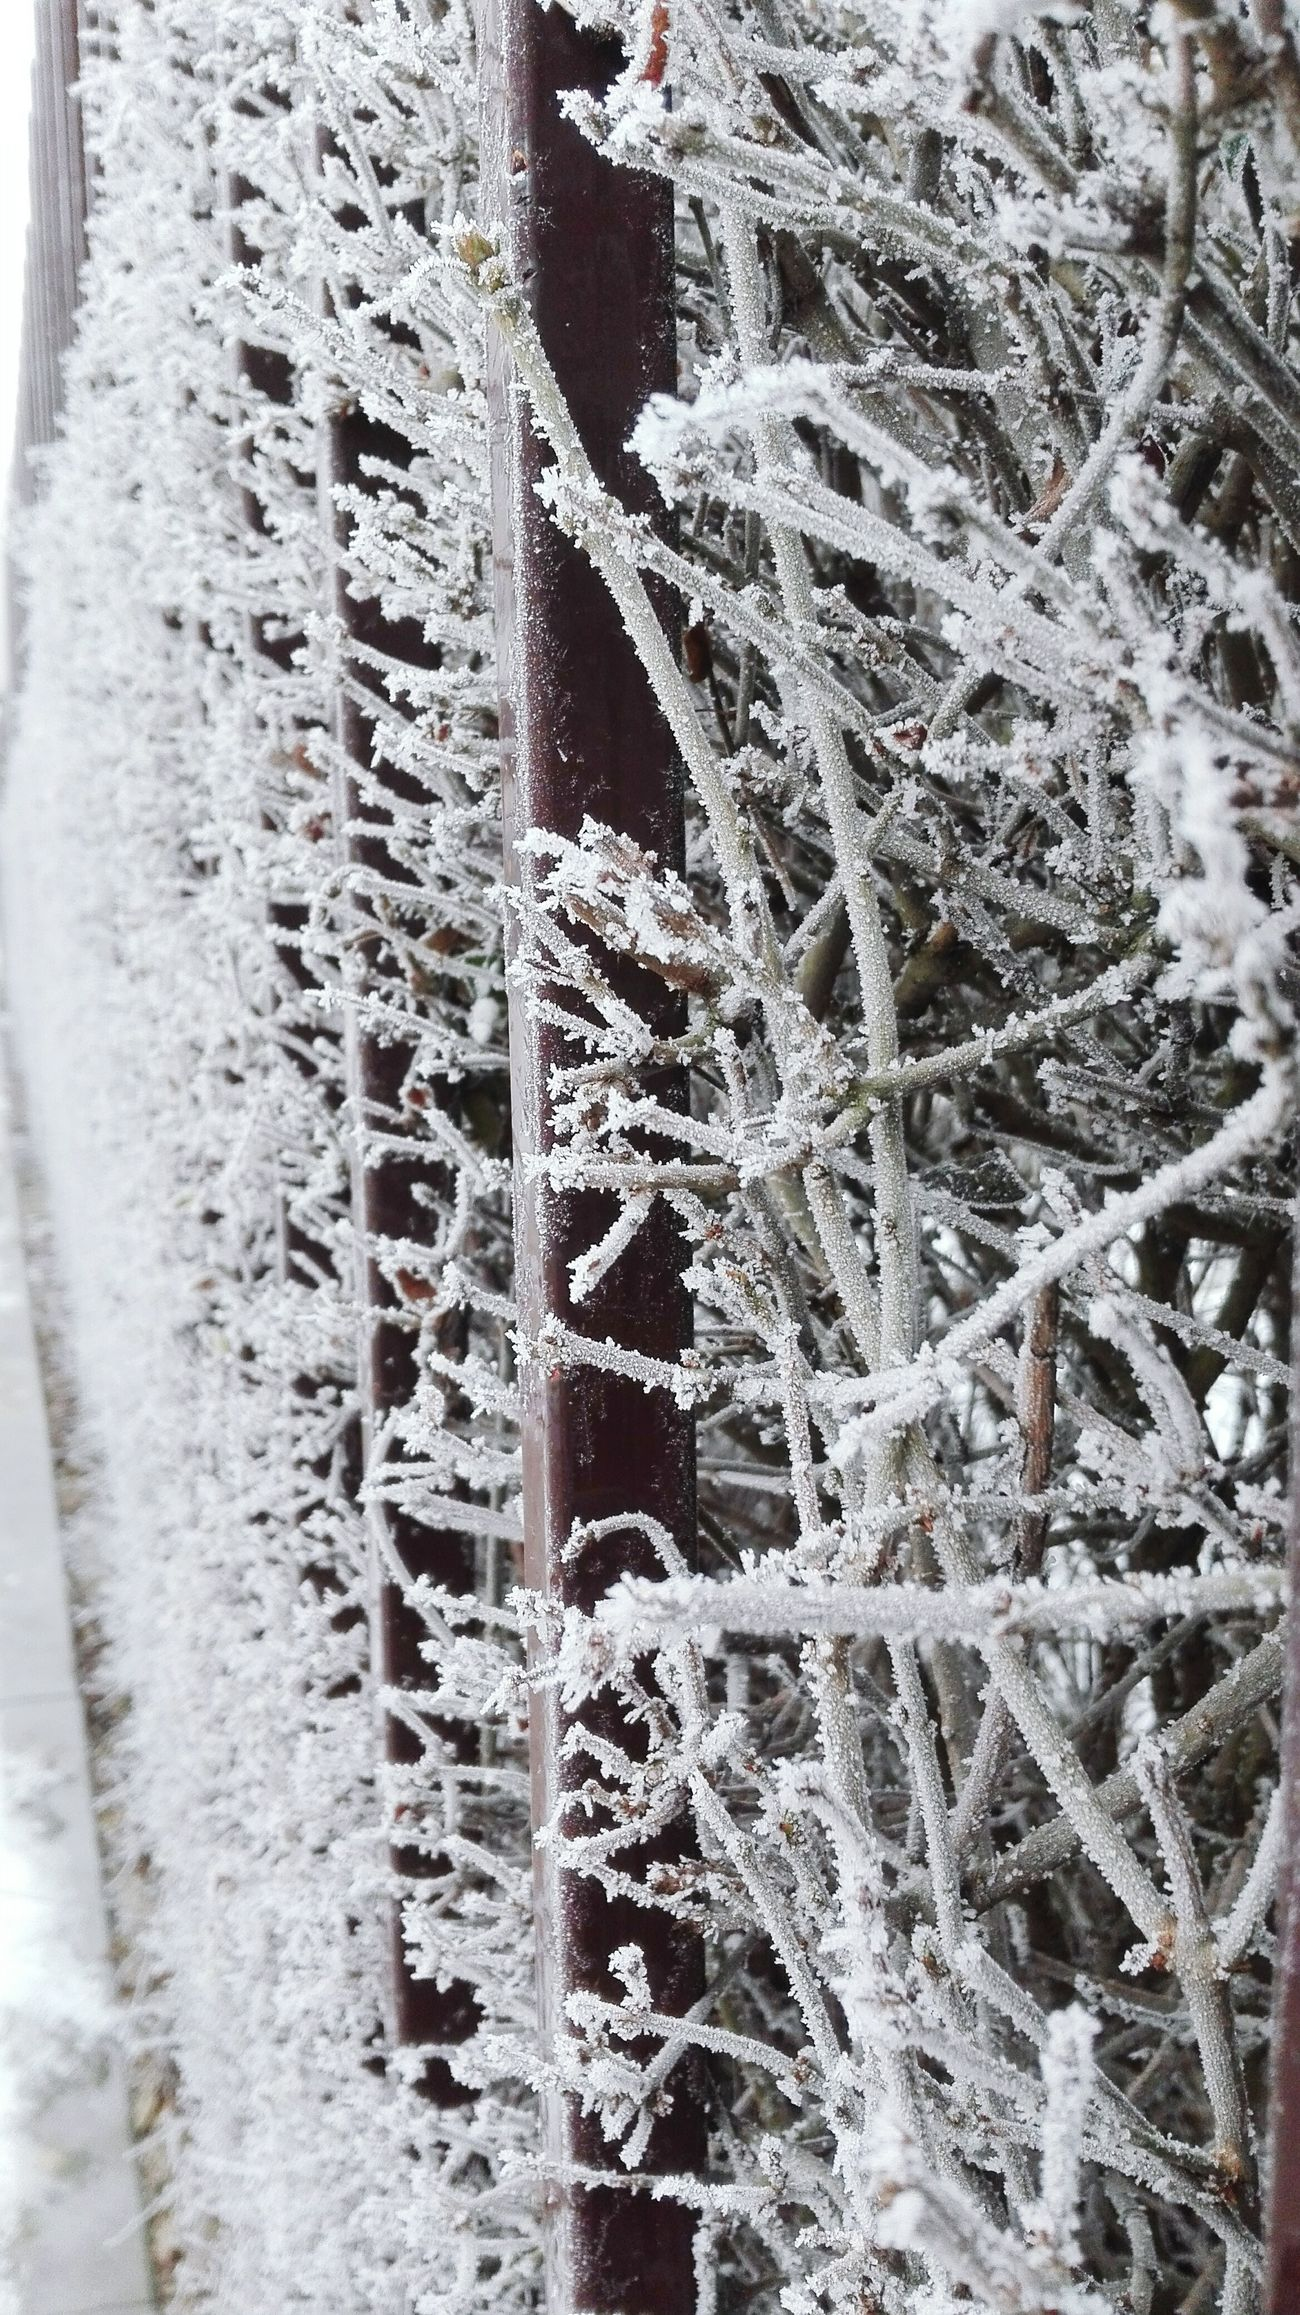 Cold Temperature Winter Nature No People Snow Day Beauty In Nature Frosted Glass